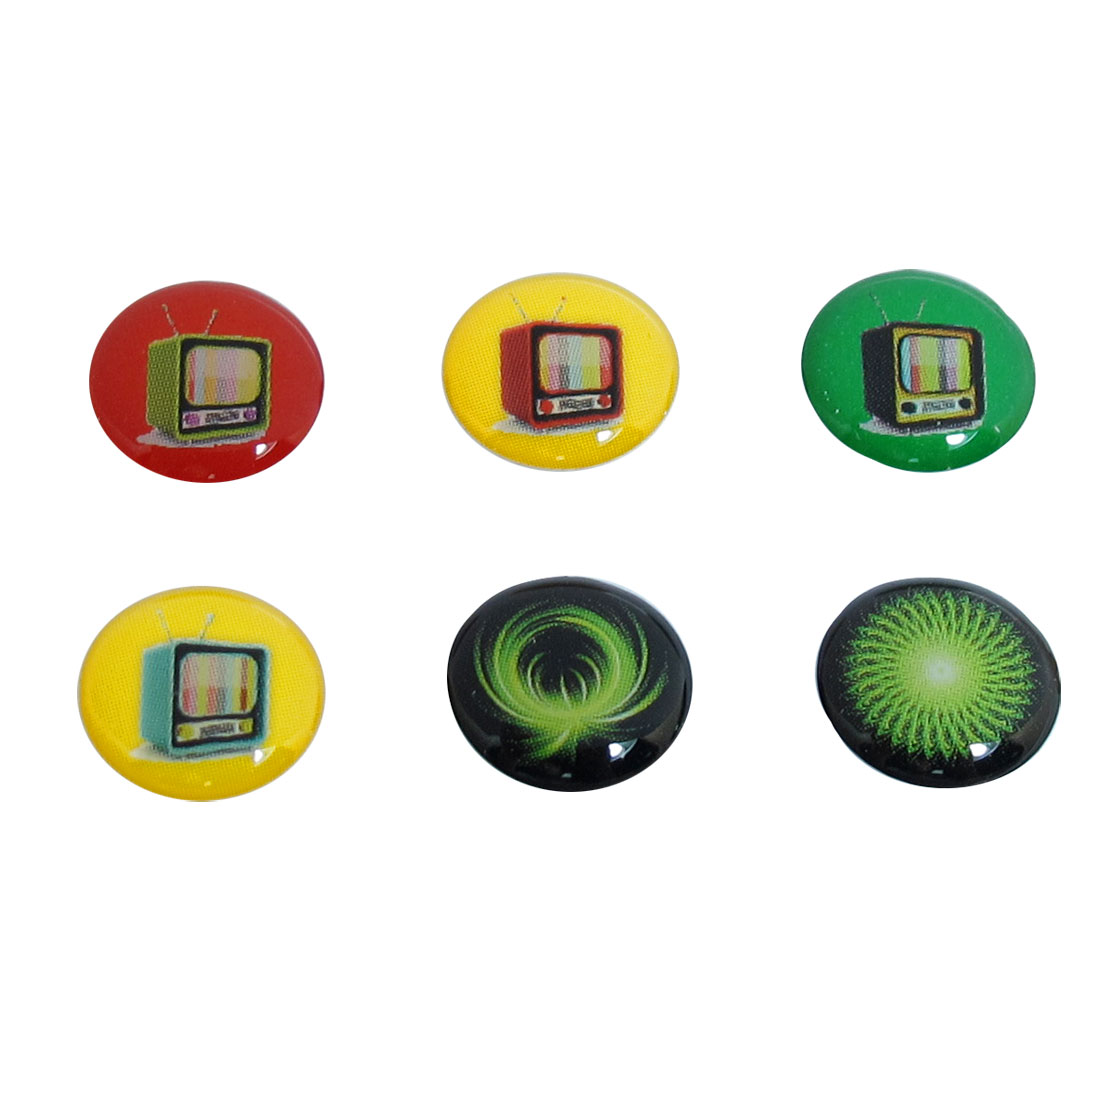 6 in 1 Plastic Assorted Television TV Home Button Sticker